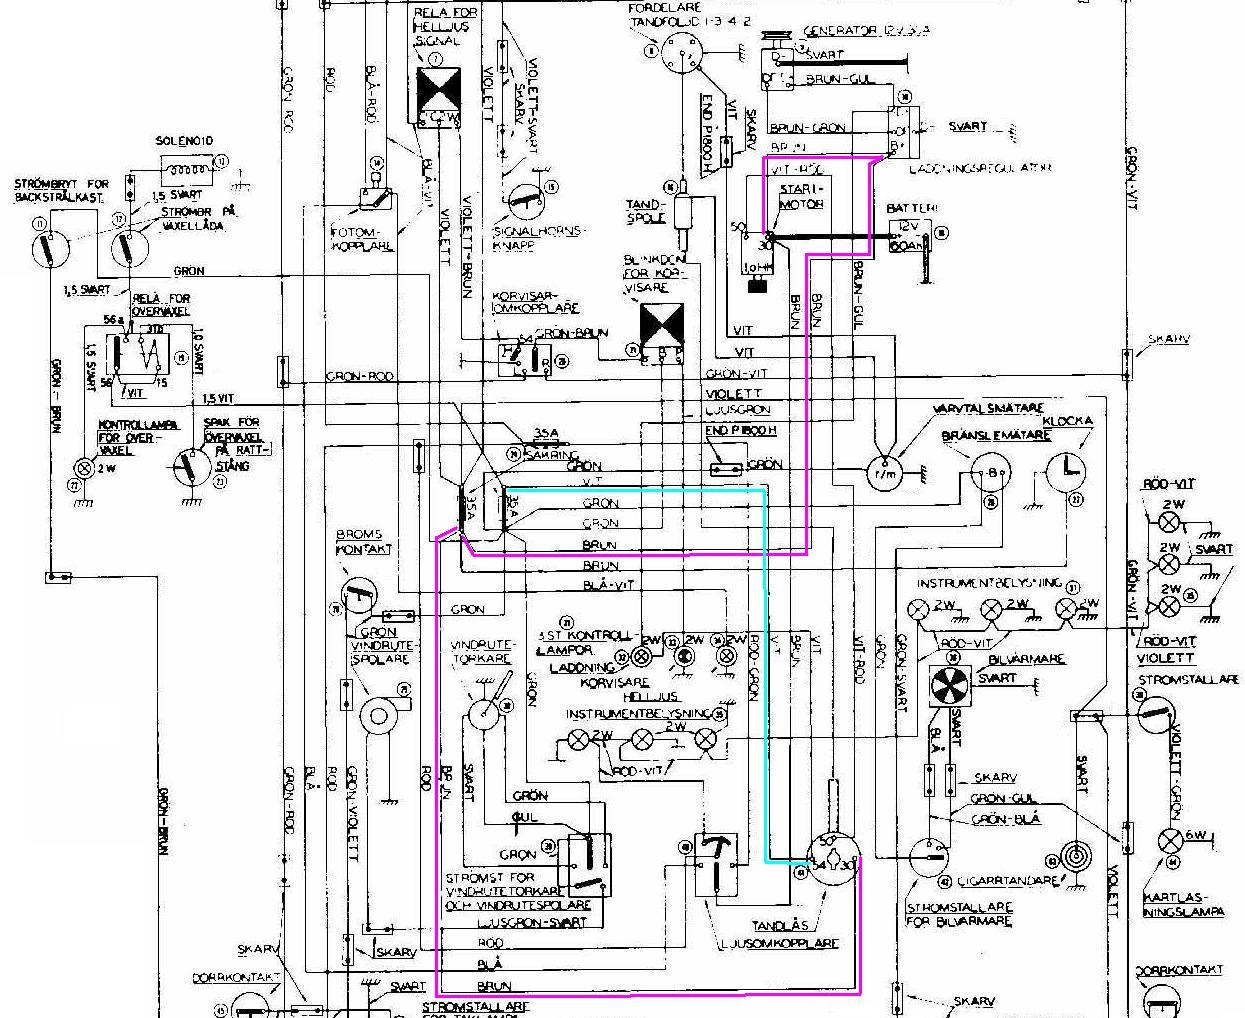 1800 Wiring Diagram marked up vs wiring diagram gmc fuse box diagrams \u2022 free wiring diagrams Industrial Wiring Diagrams at gsmx.co